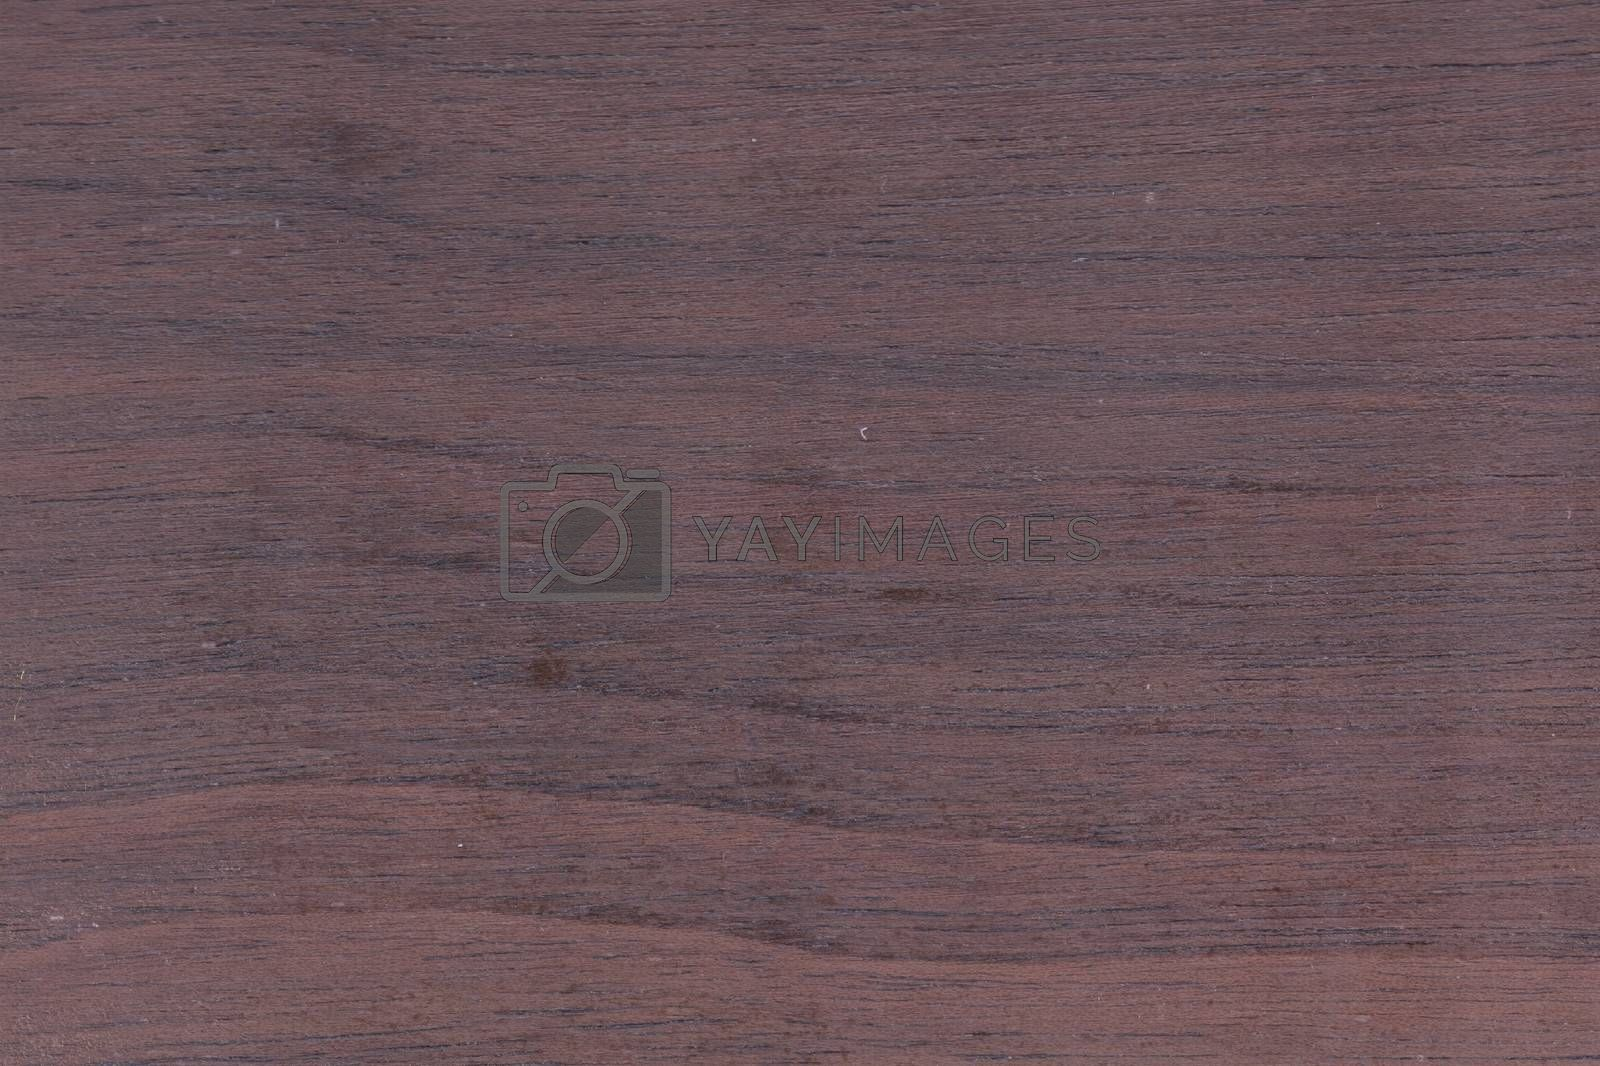 The Walnut wood processing material